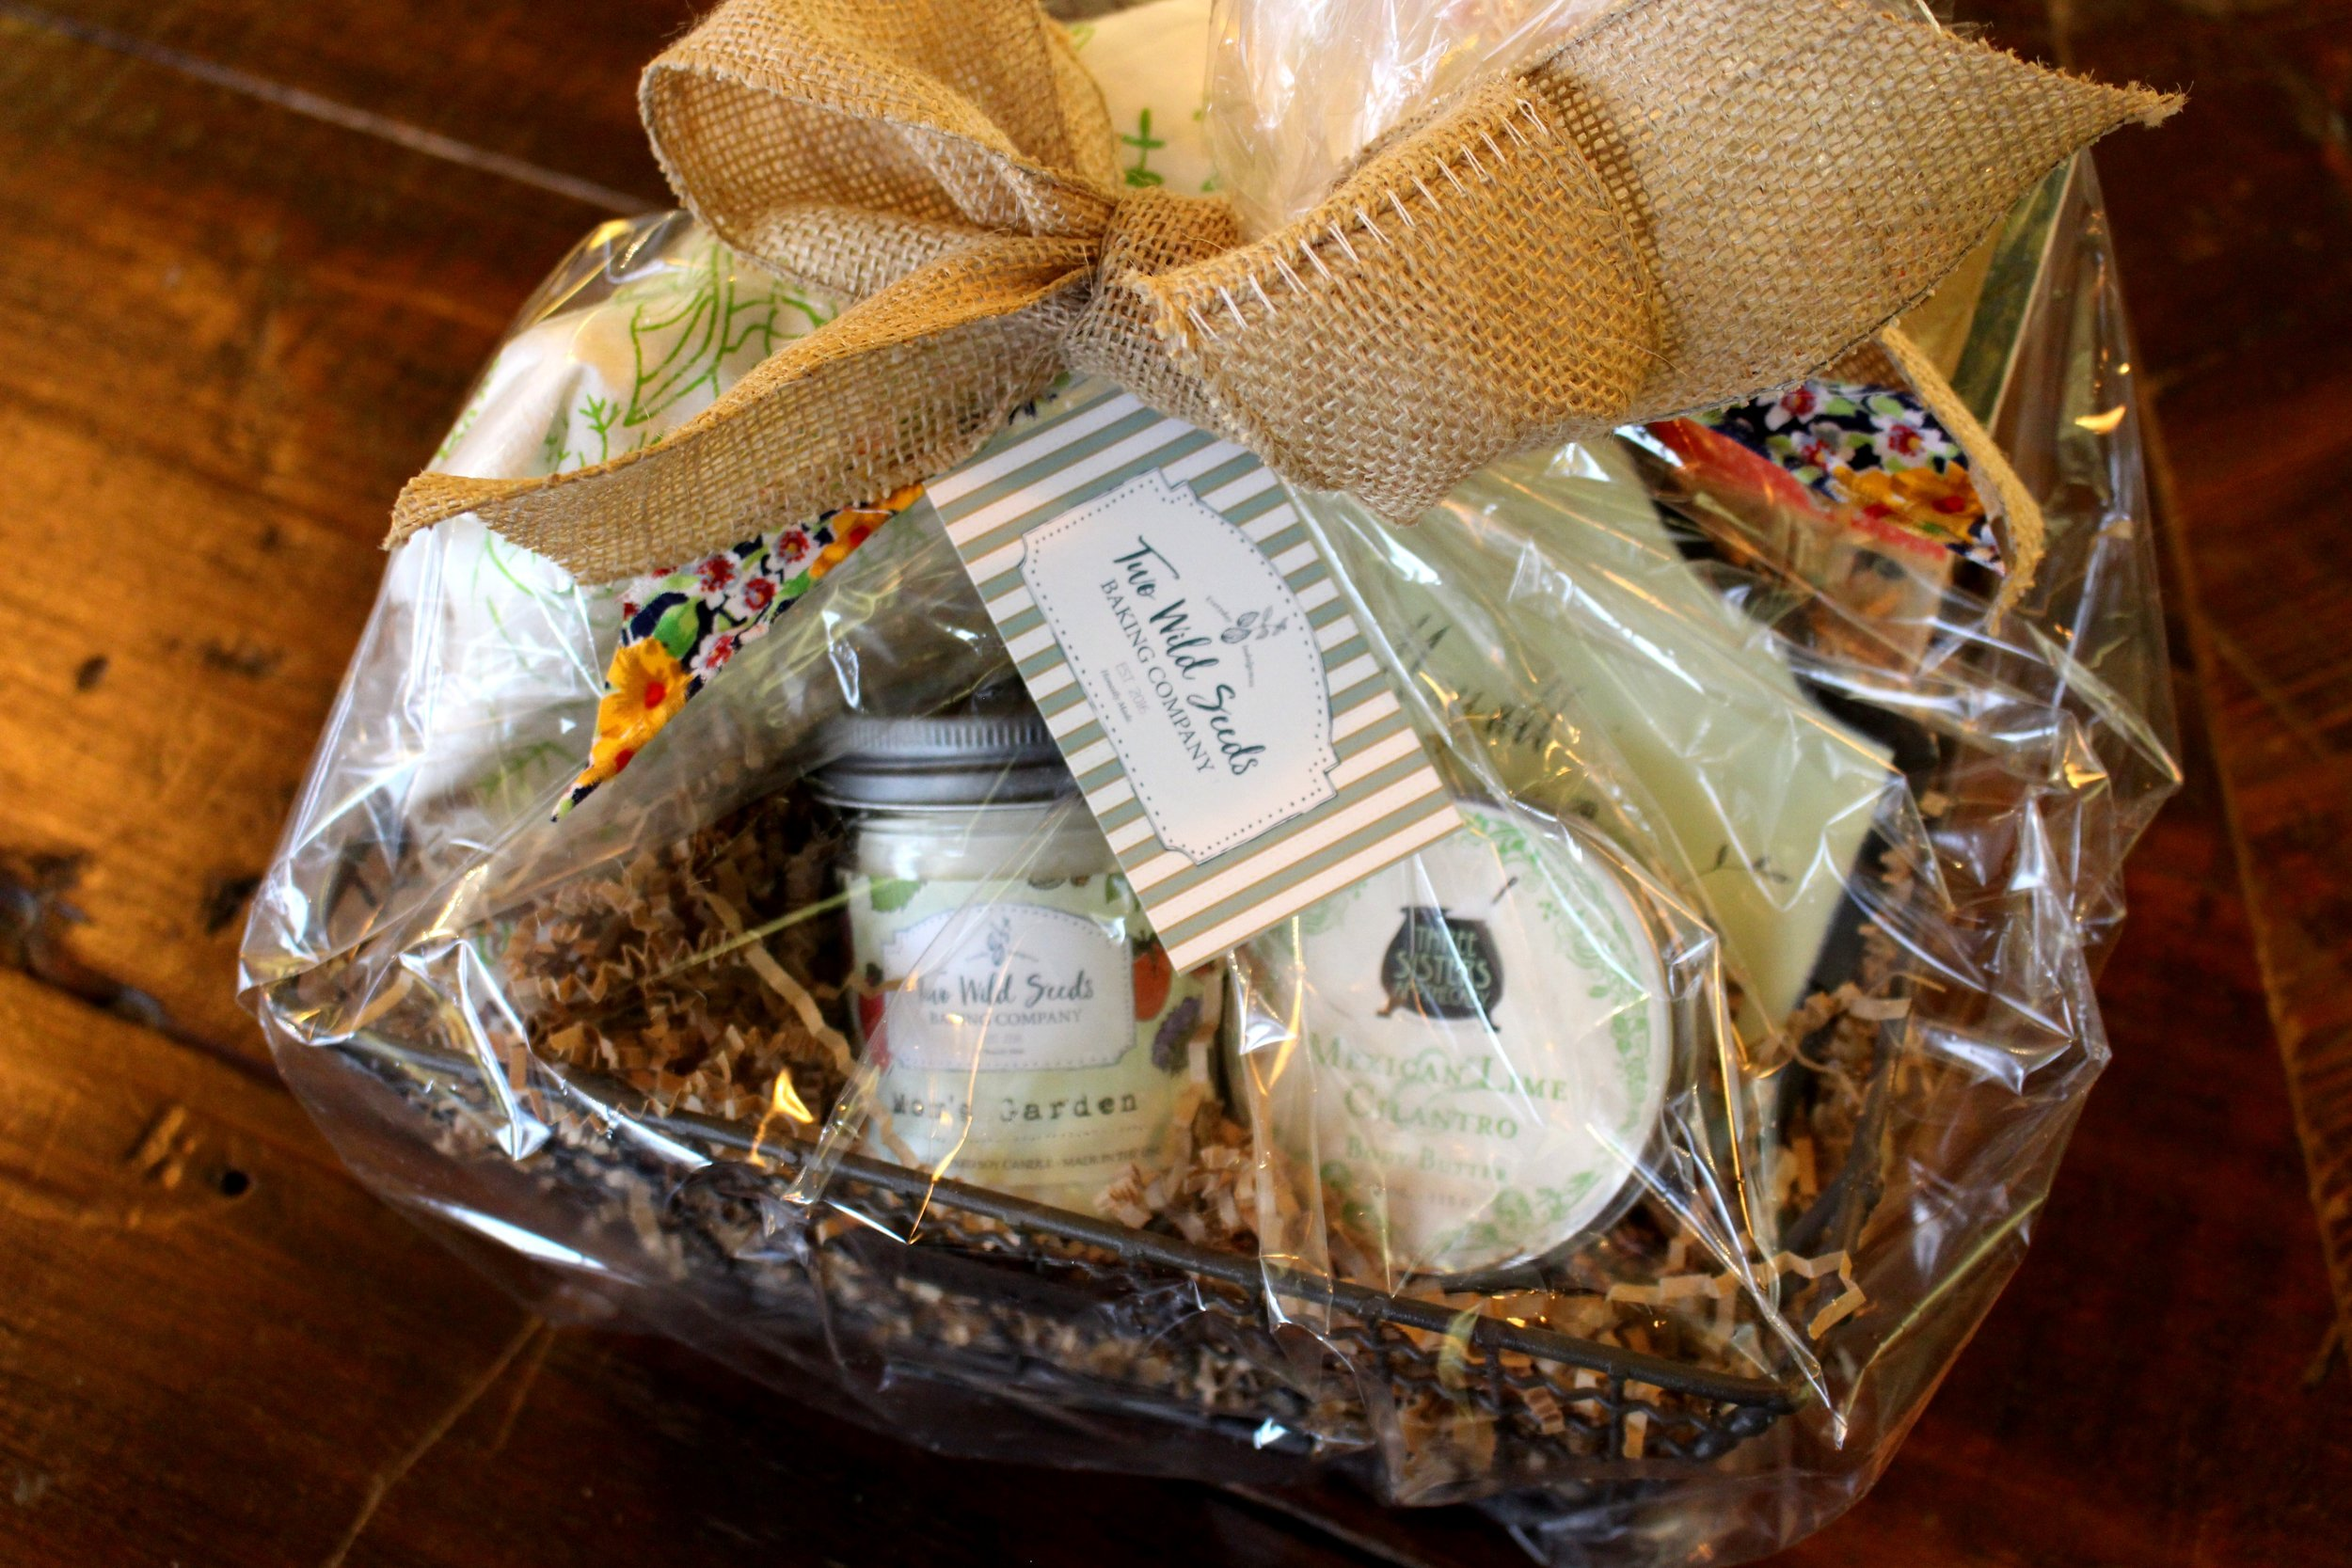 Two Wild Seeds Gift Basket